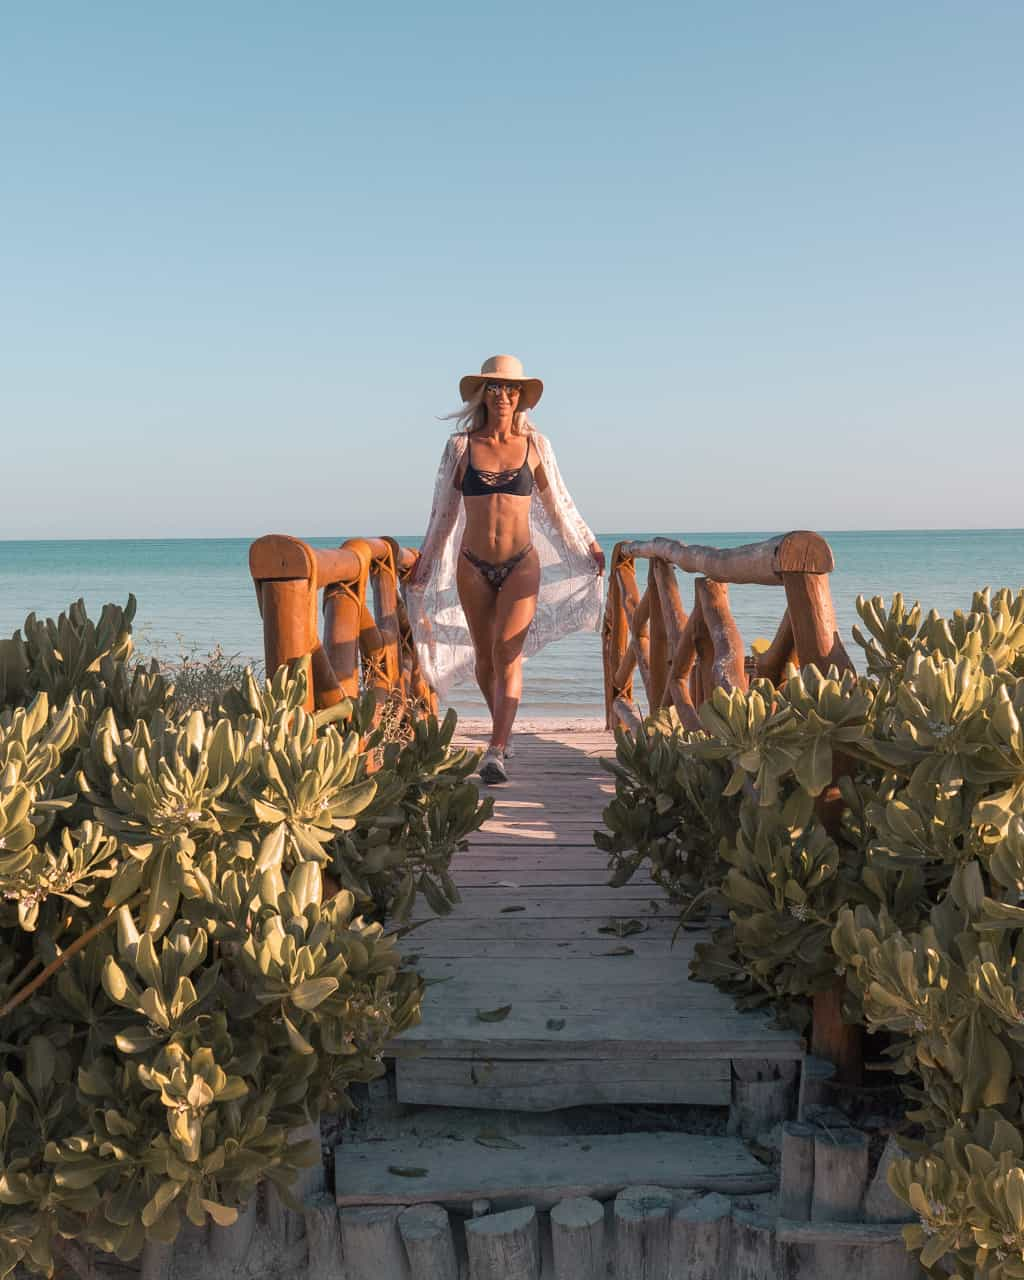 isla-holbox-mexico-wooden-bridge-ilse